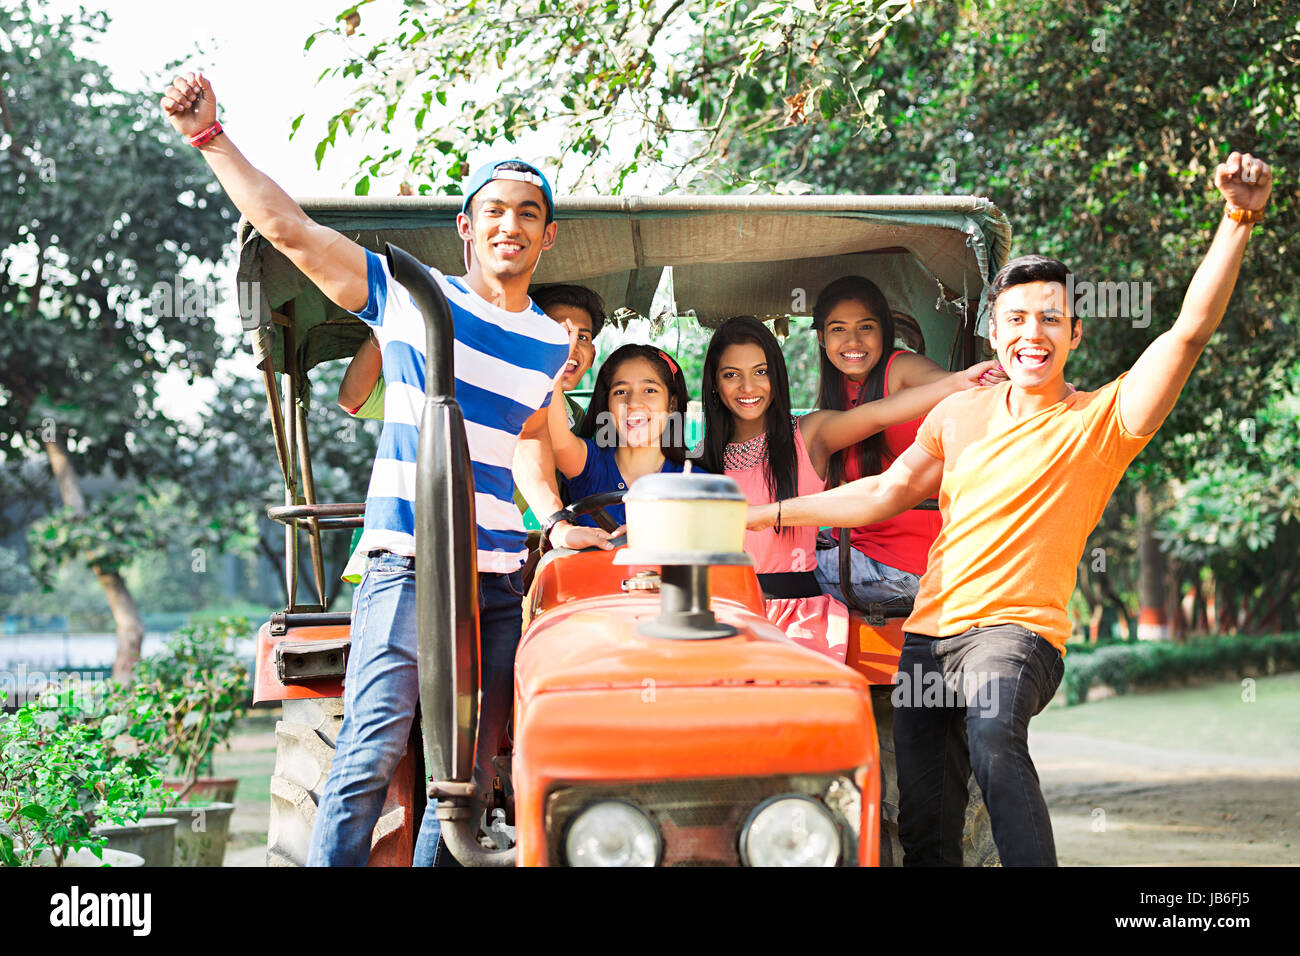 Similar situation. young teens ride have